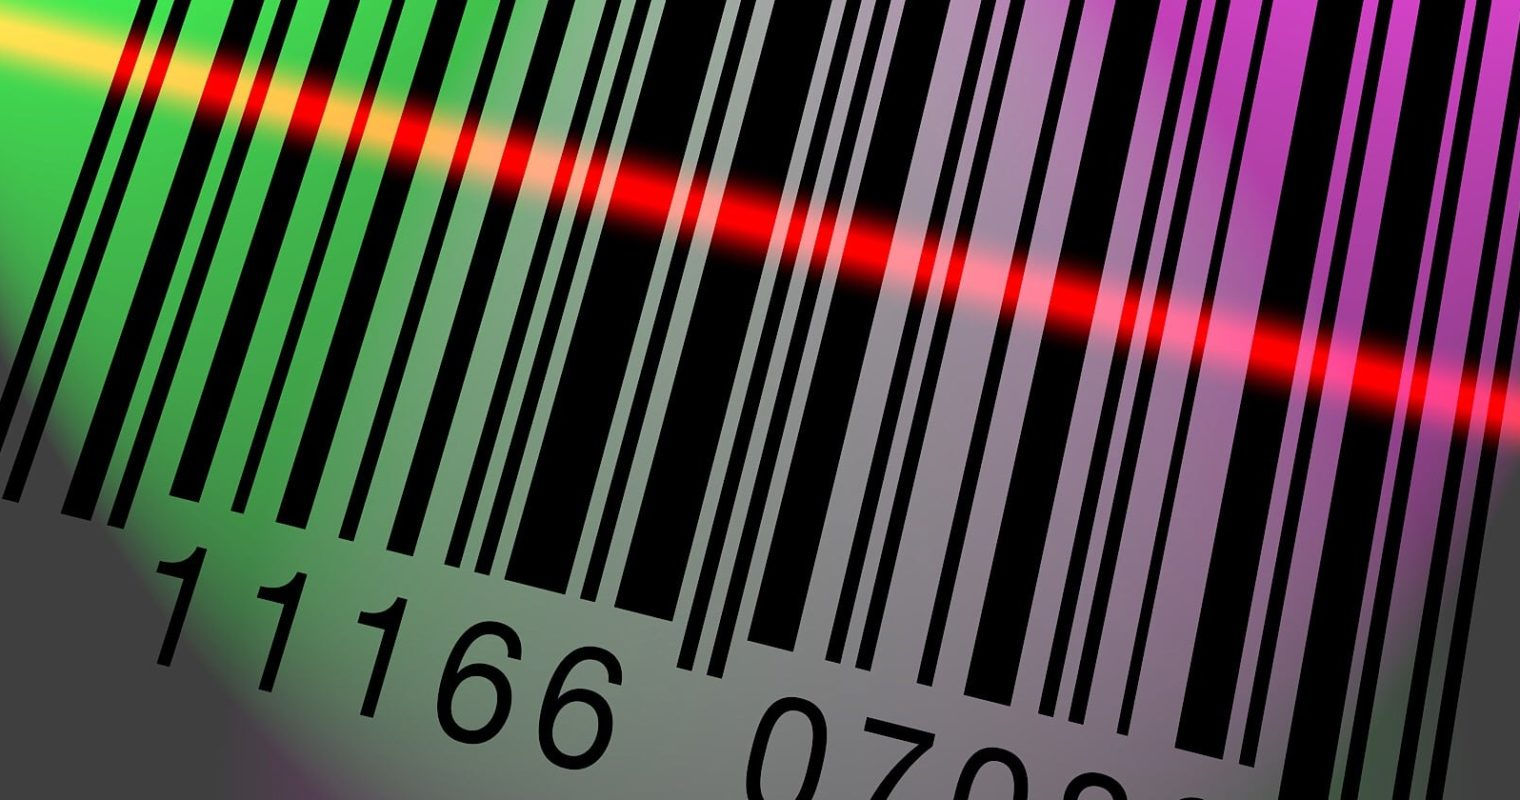 Google Chrome Has a New Barcode Scanning Shortcut